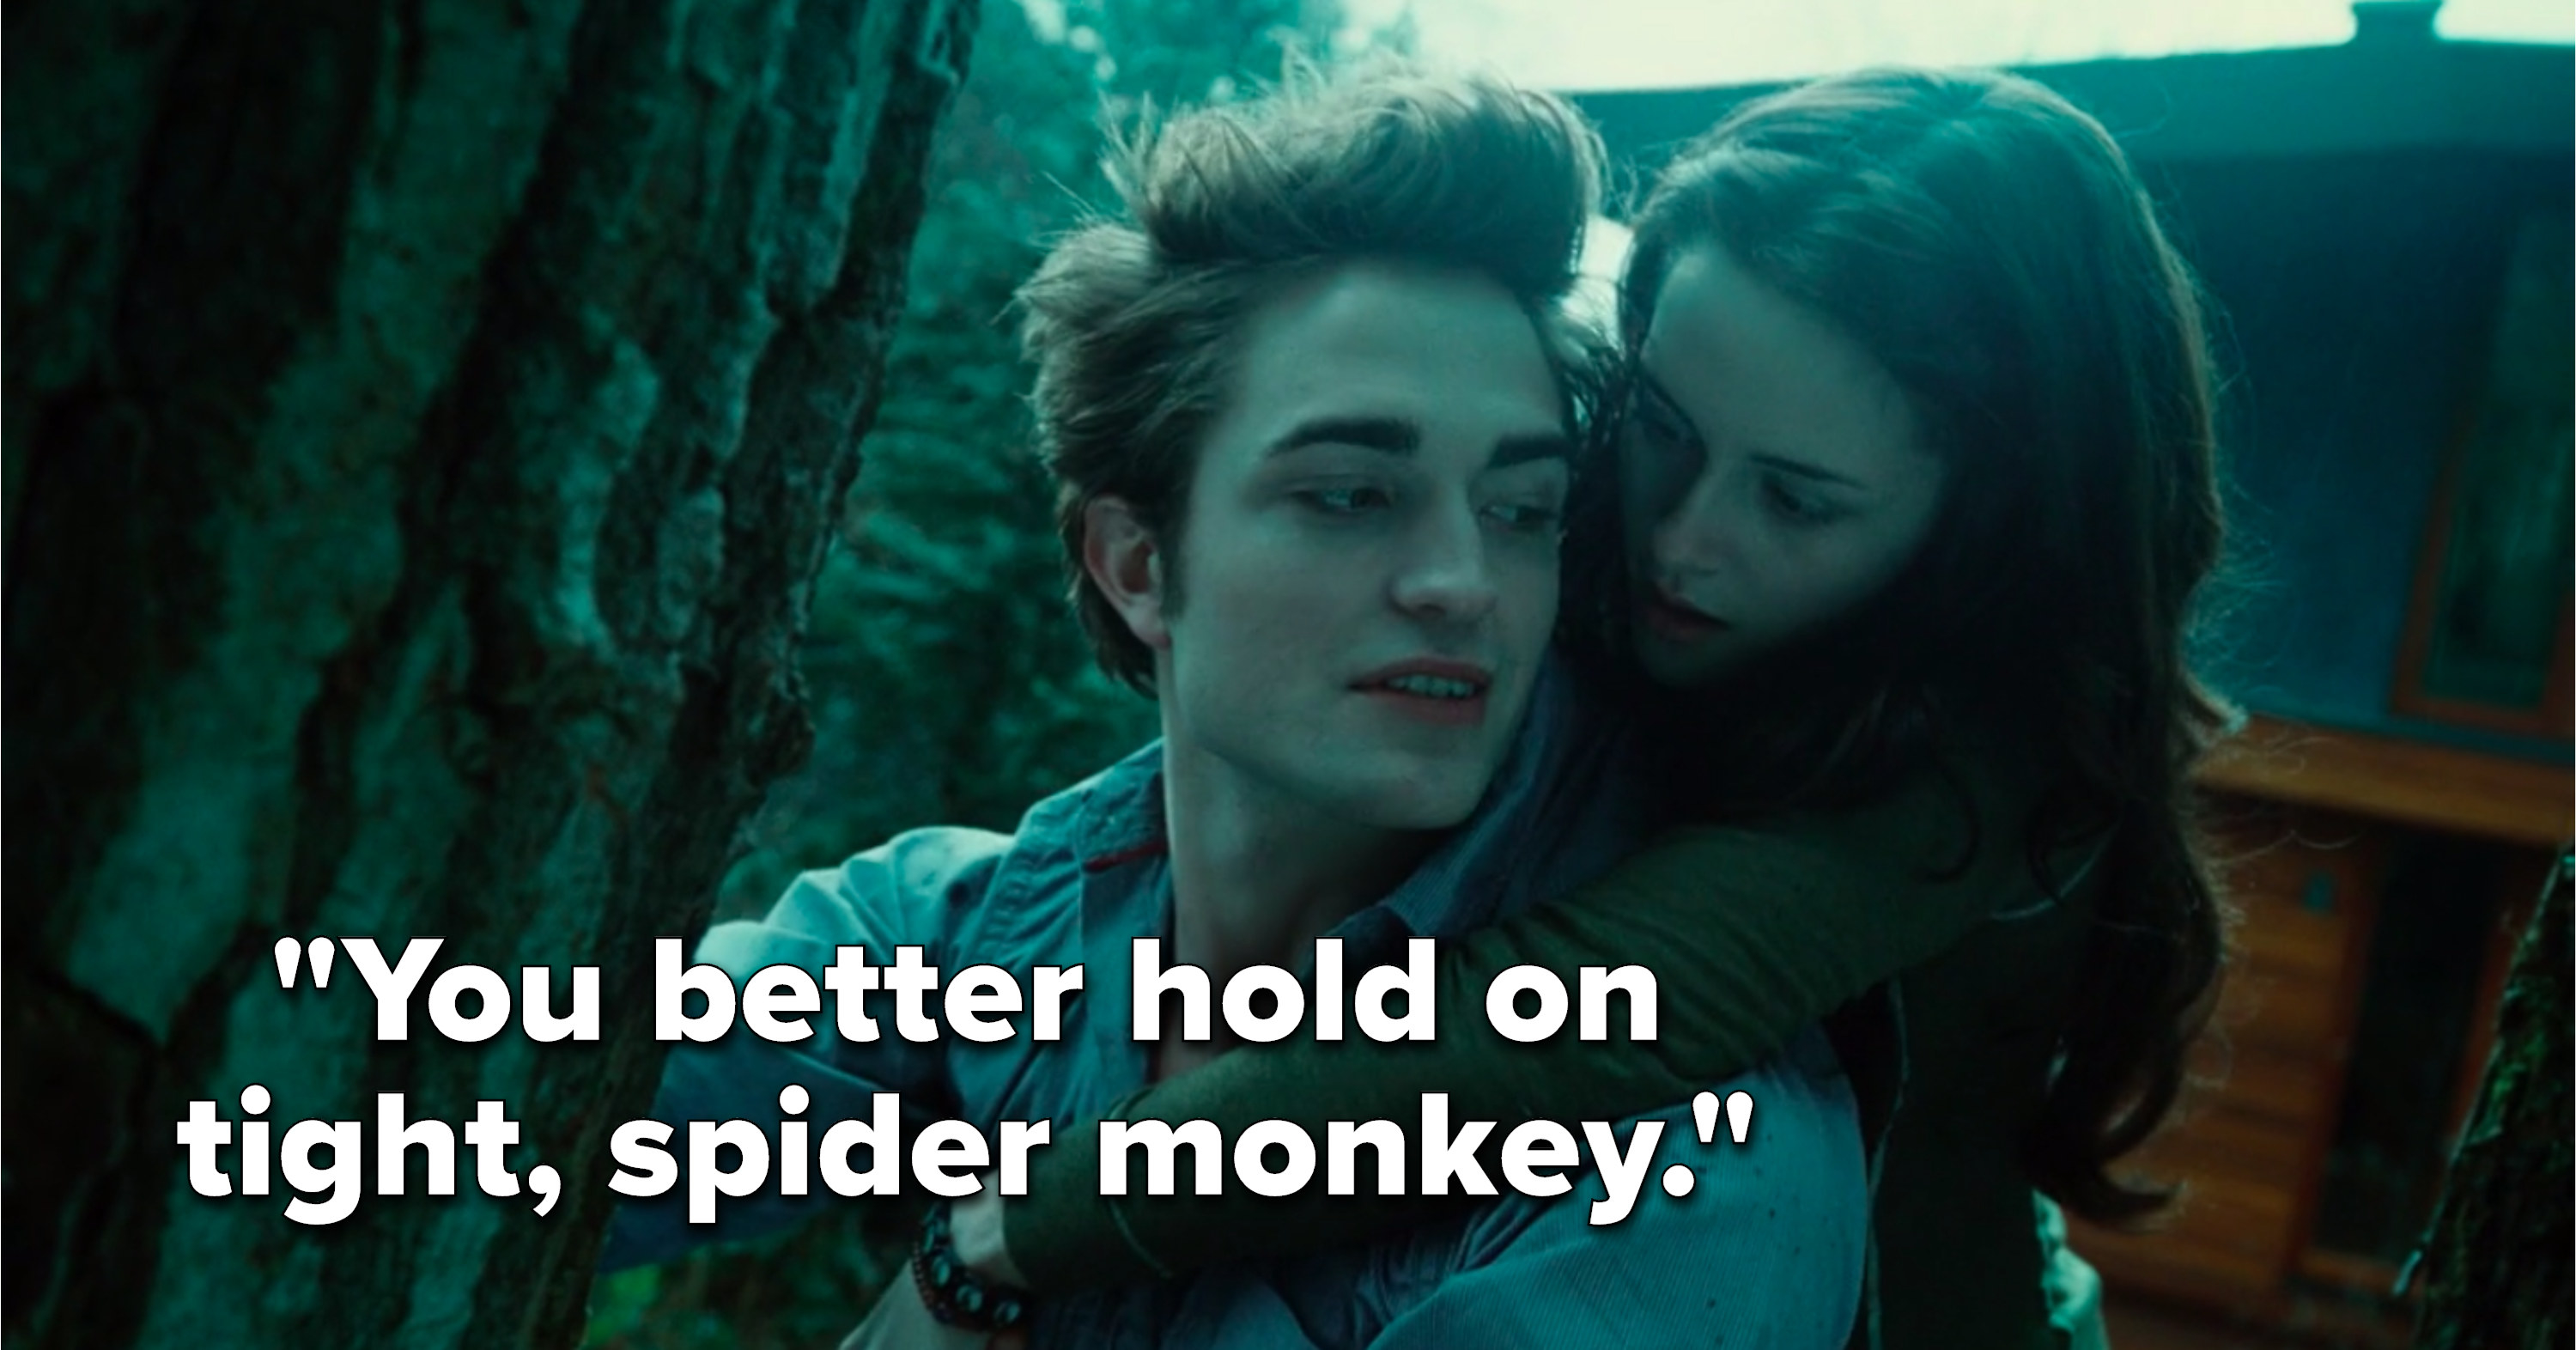 """Edward says, """"You better hold on tight, spider monkey."""""""